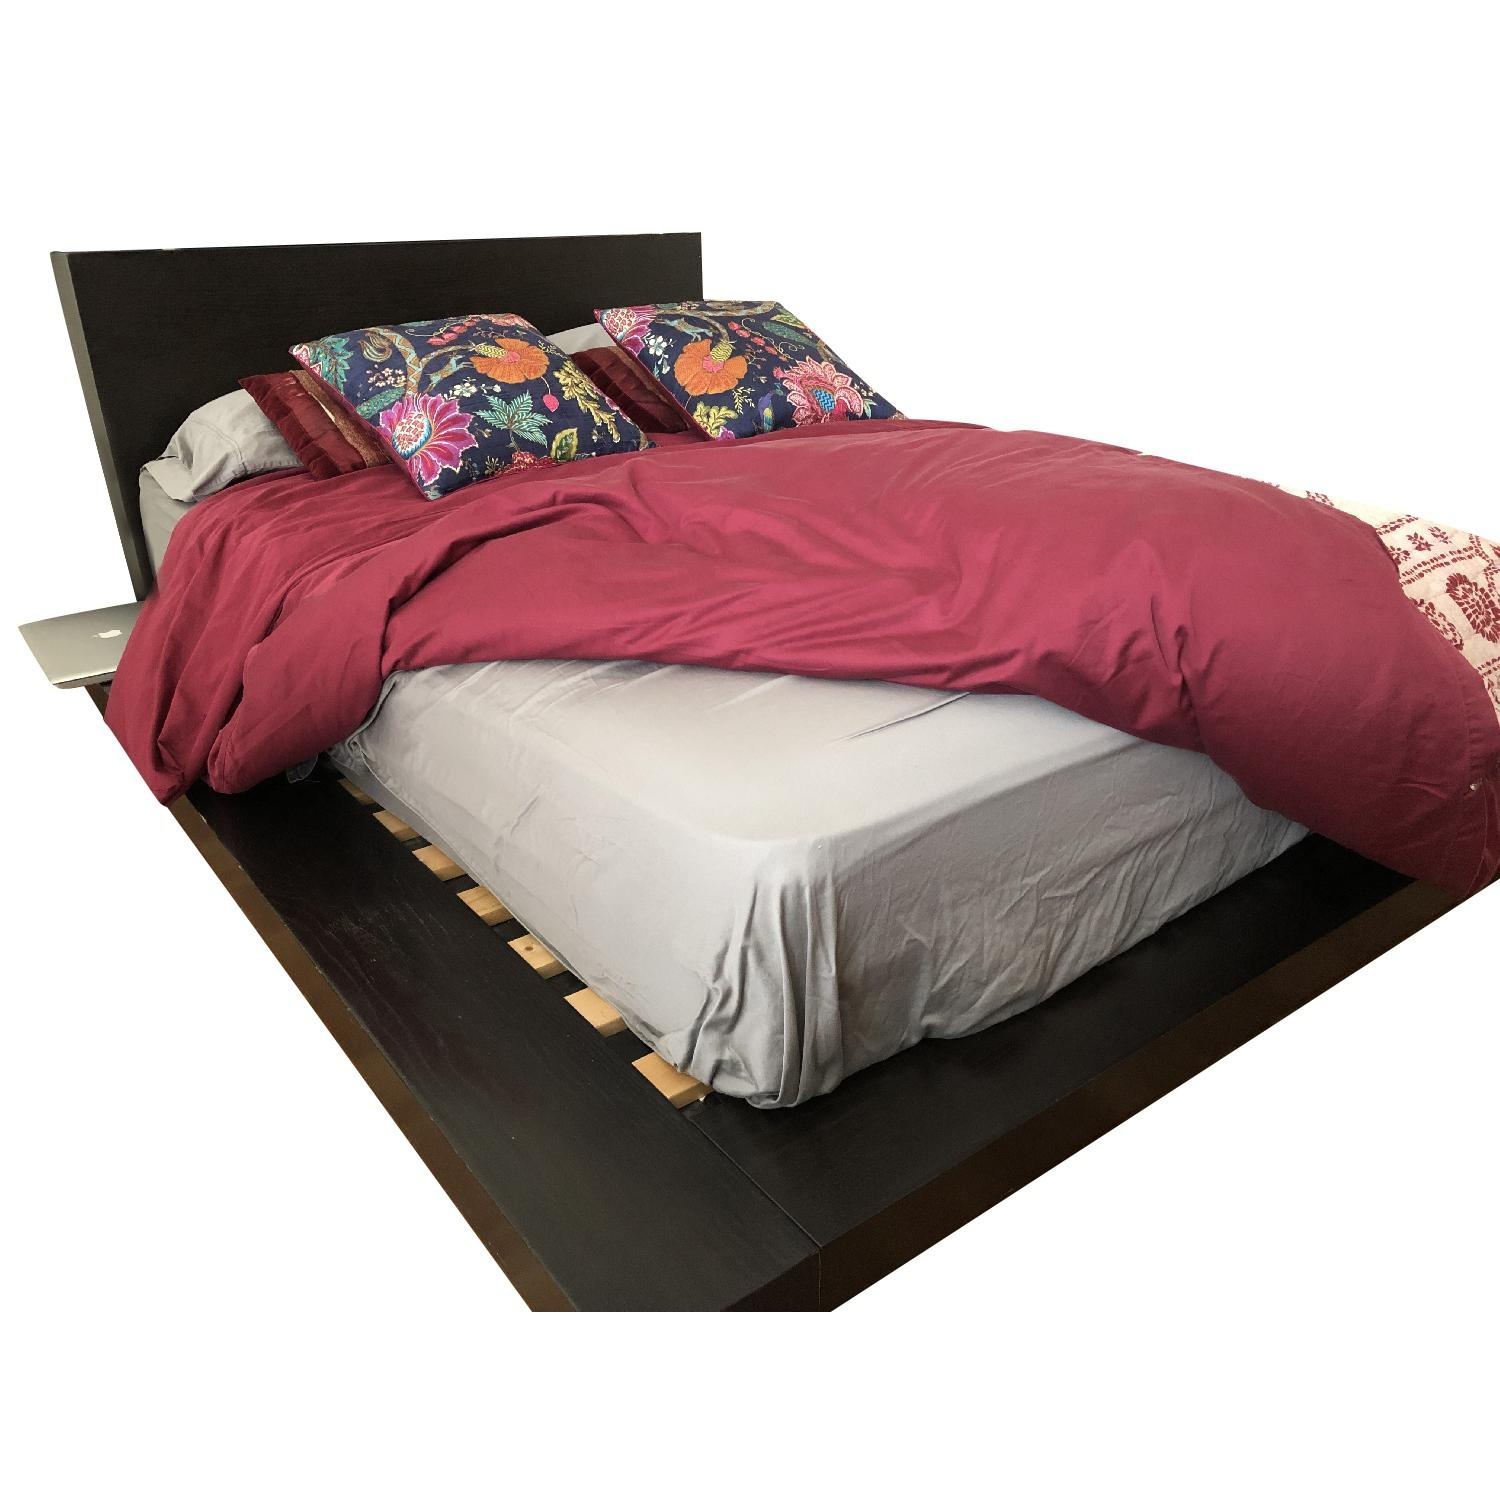 West Elm Platform Bed Frame w/ Headboard